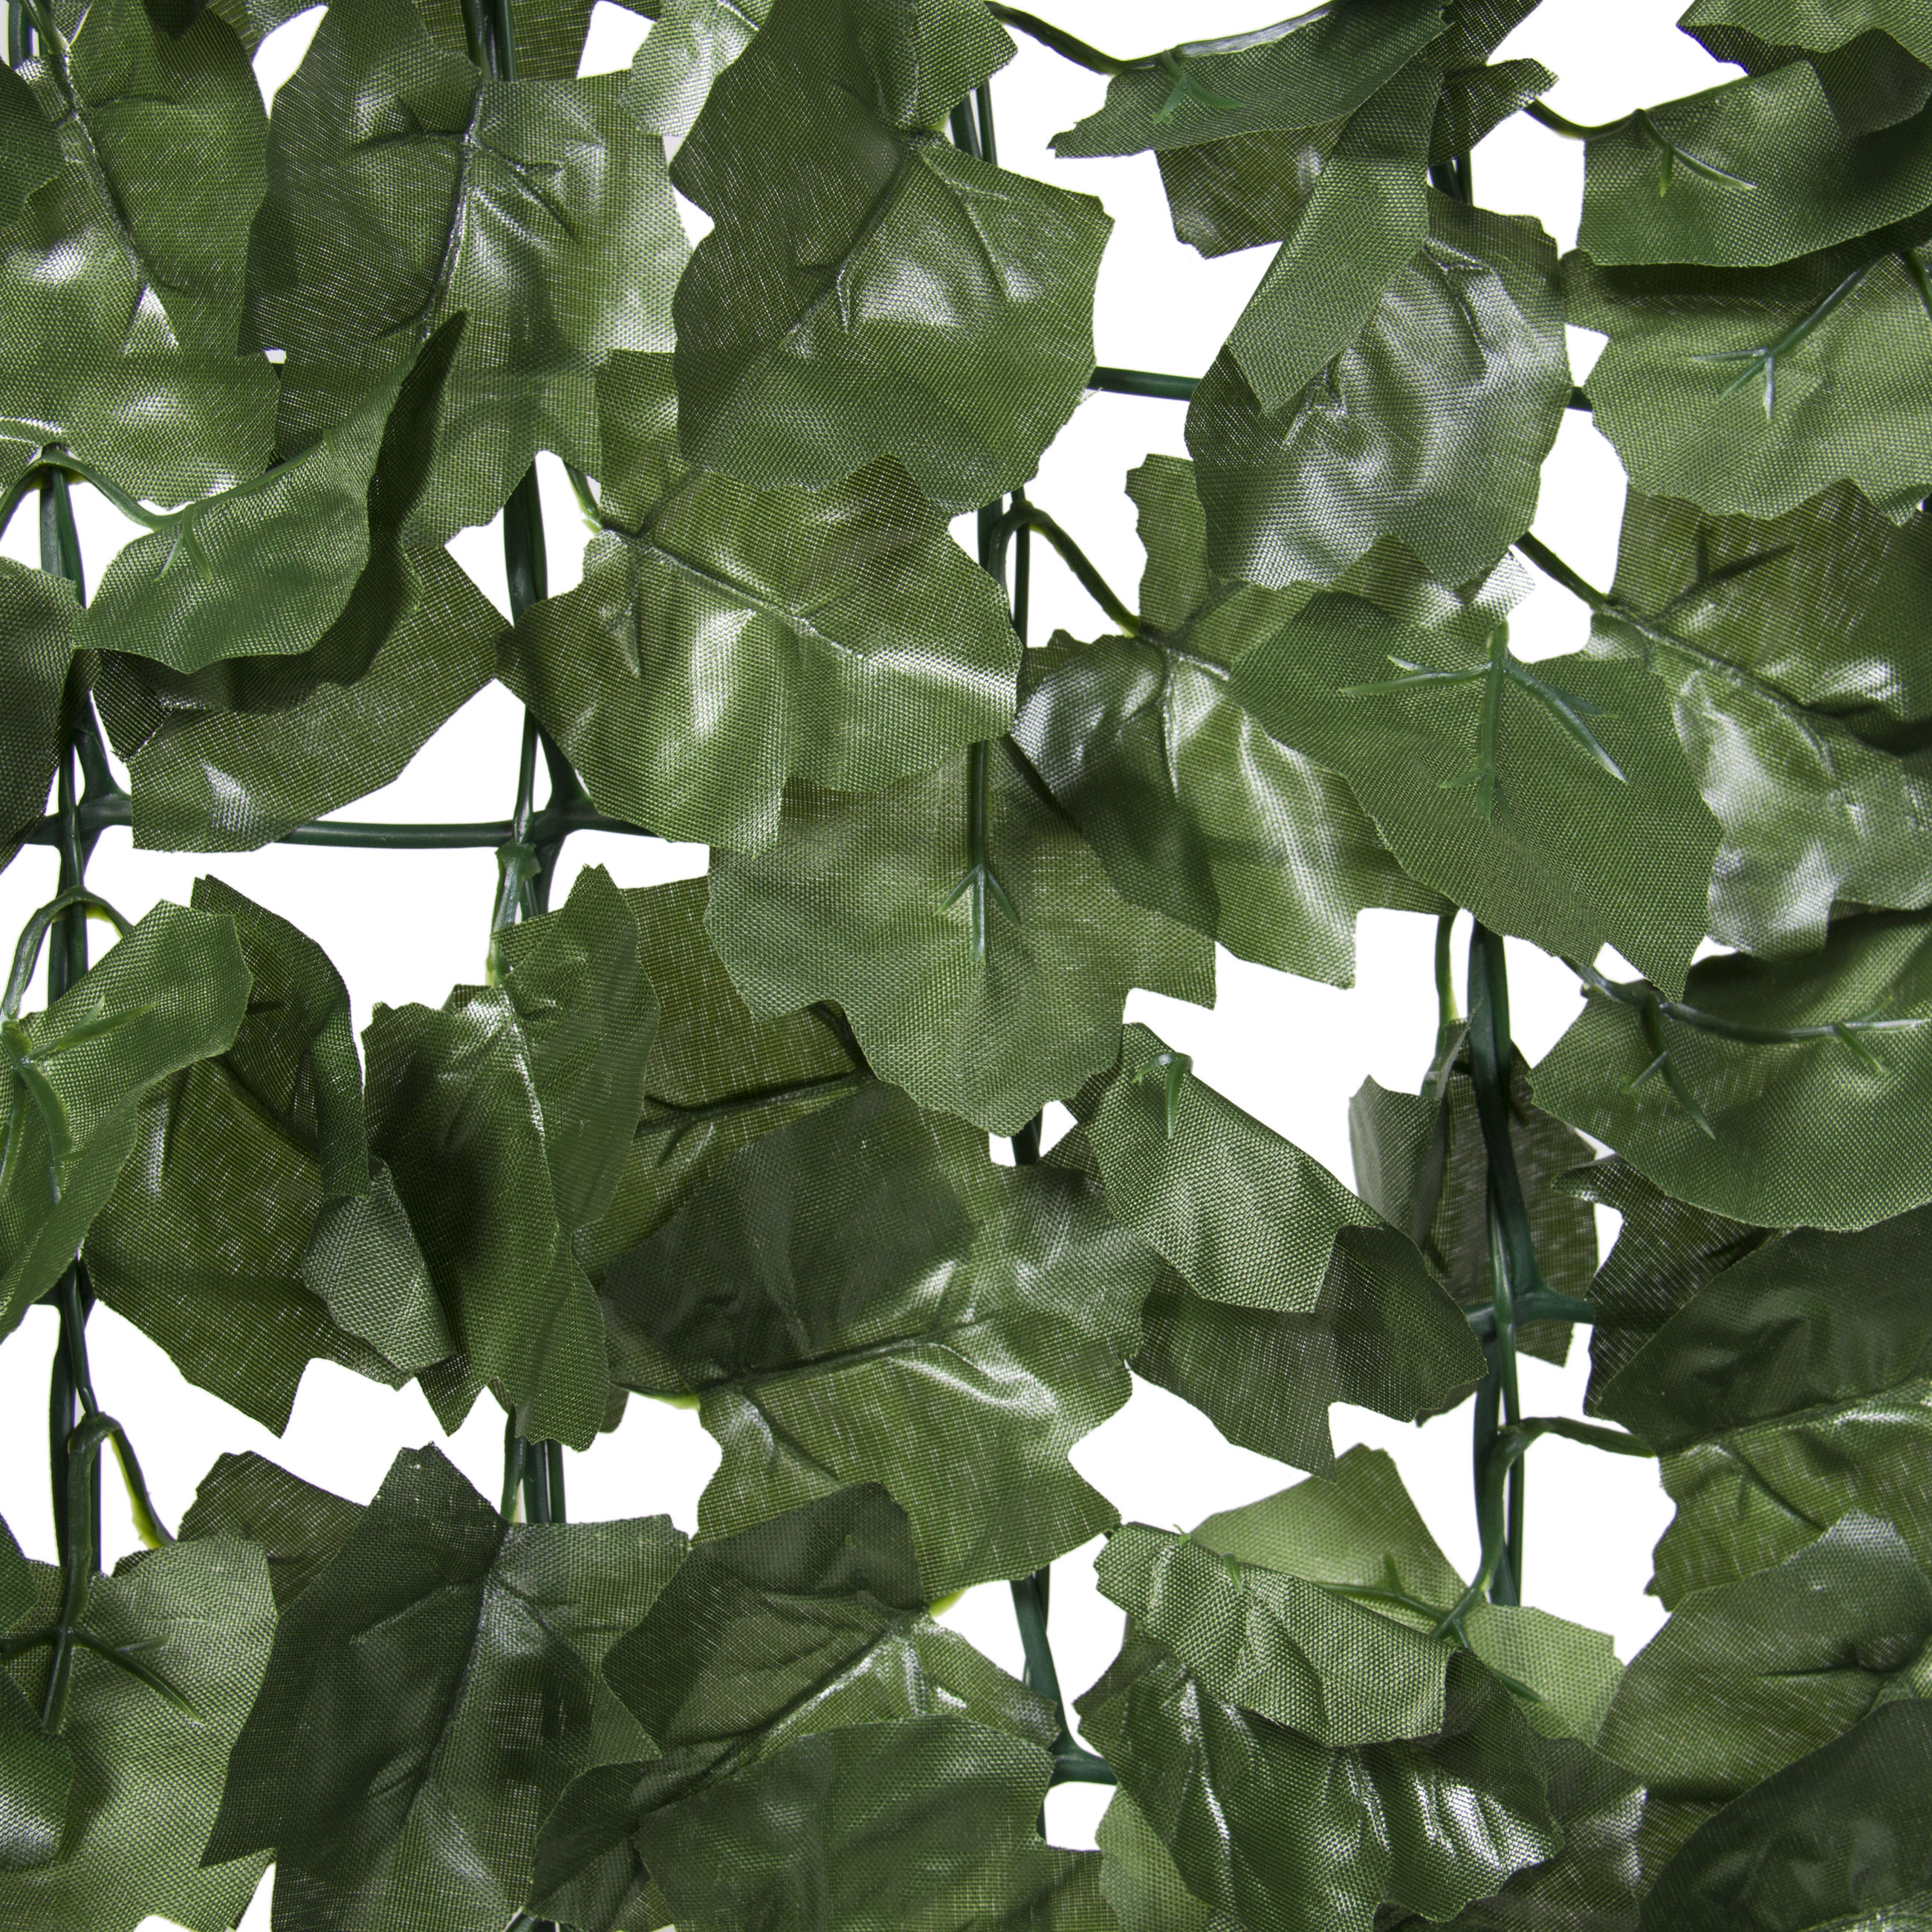 Faux Ivy Privacy Fence Screen 94